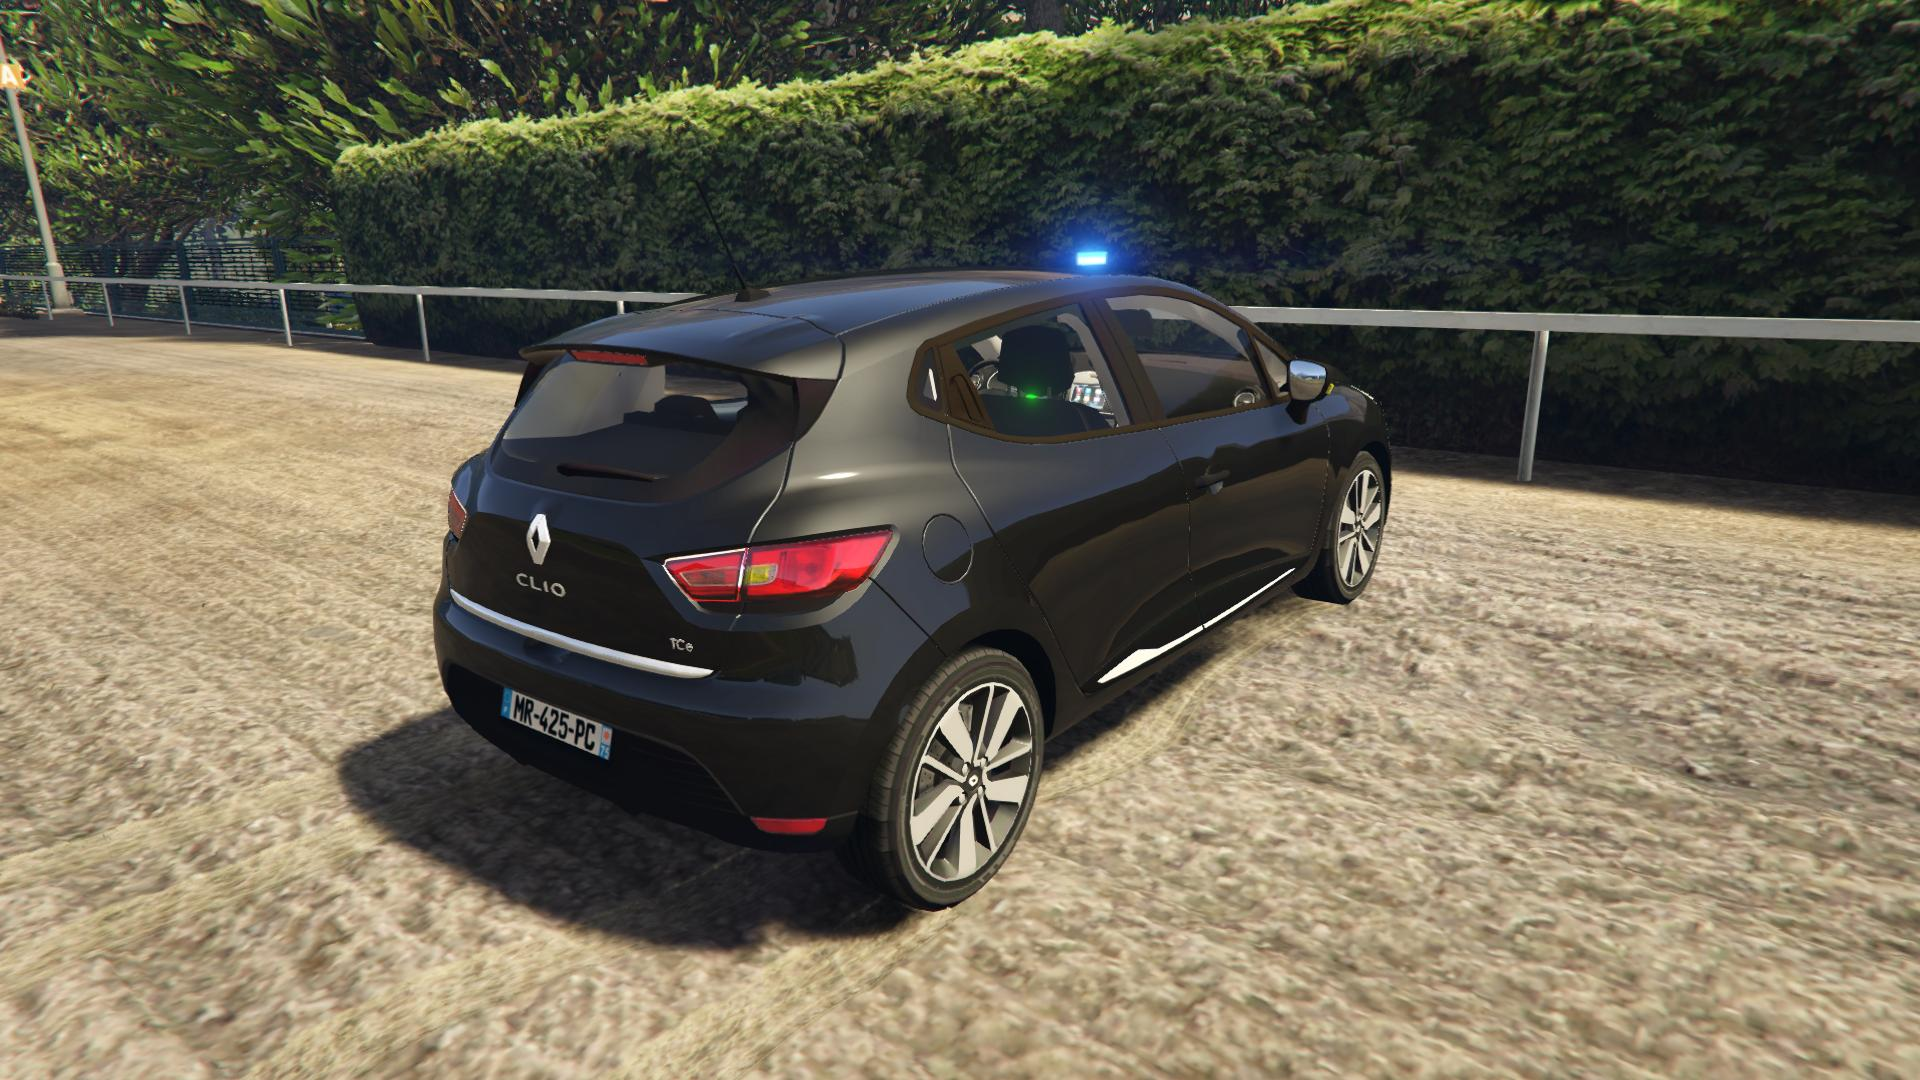 renault clio 4 bac unmarked police vehicules pour gta v sur gta modding. Black Bedroom Furniture Sets. Home Design Ideas